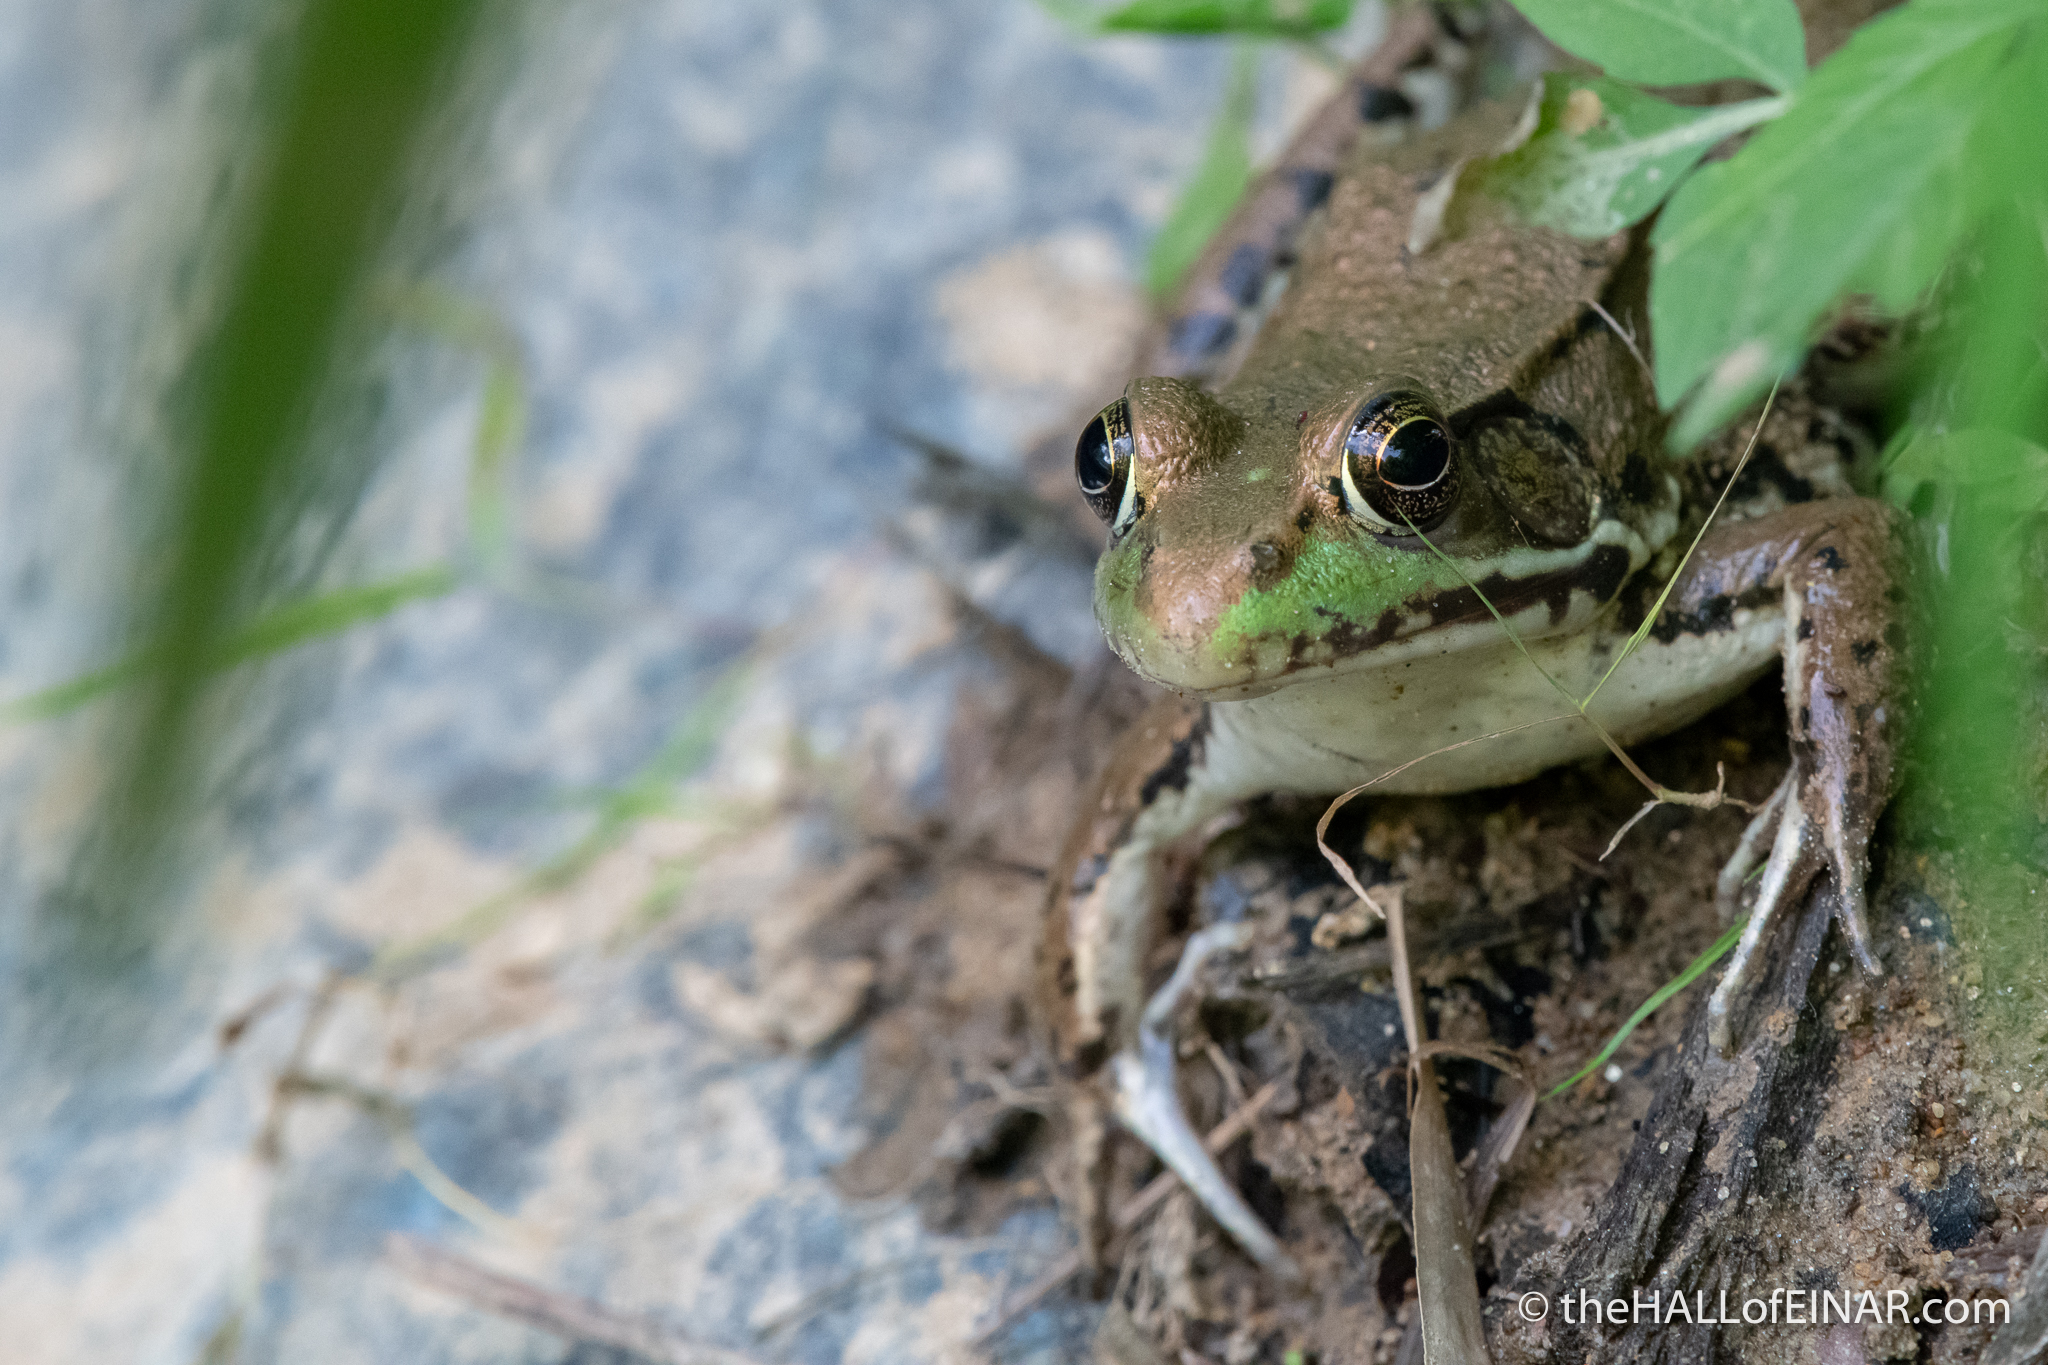 Green Frog - Lithobates clamitans - The Hall of Einar - photograph (c) David Bailey (not the)